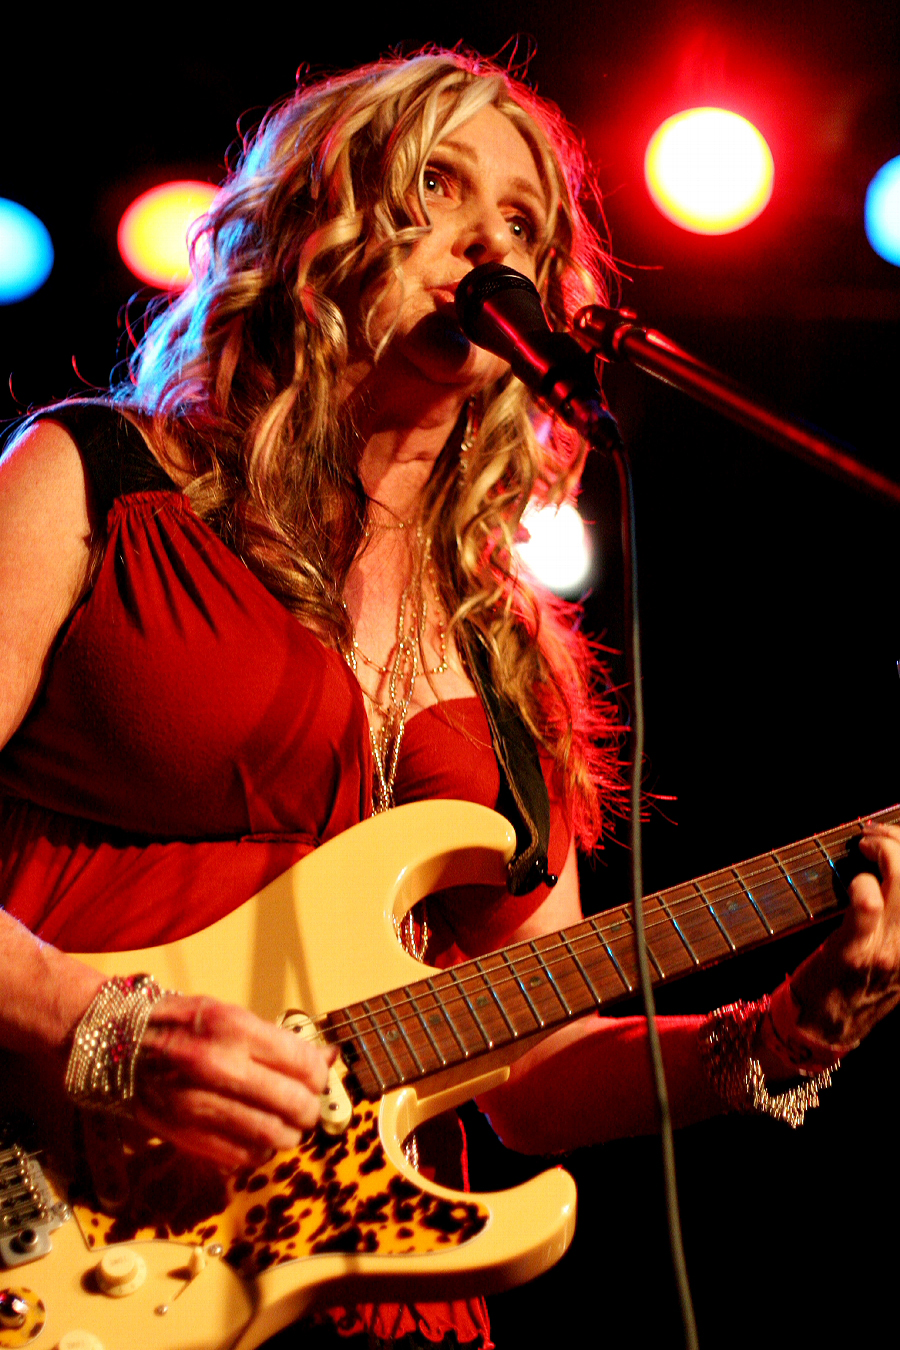 American Blues Singer And Guitarist Peach Discusses A Night In